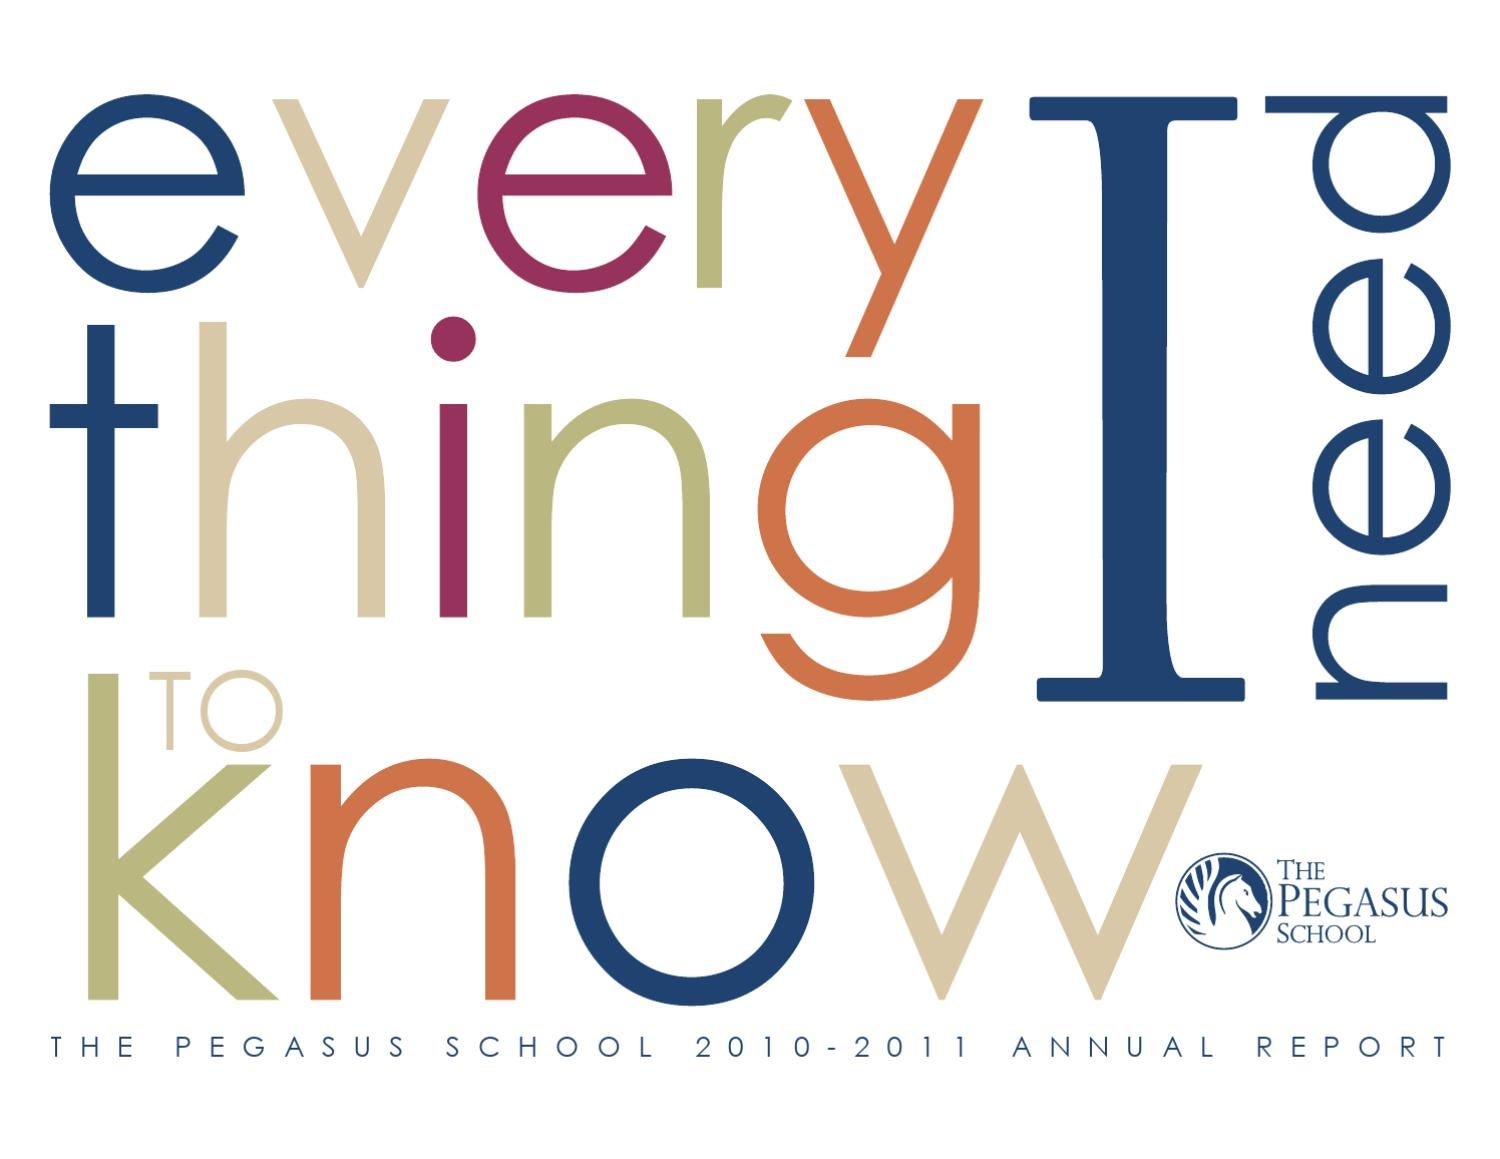 Annual Report 2010_11 by The Pegasus School - issuu